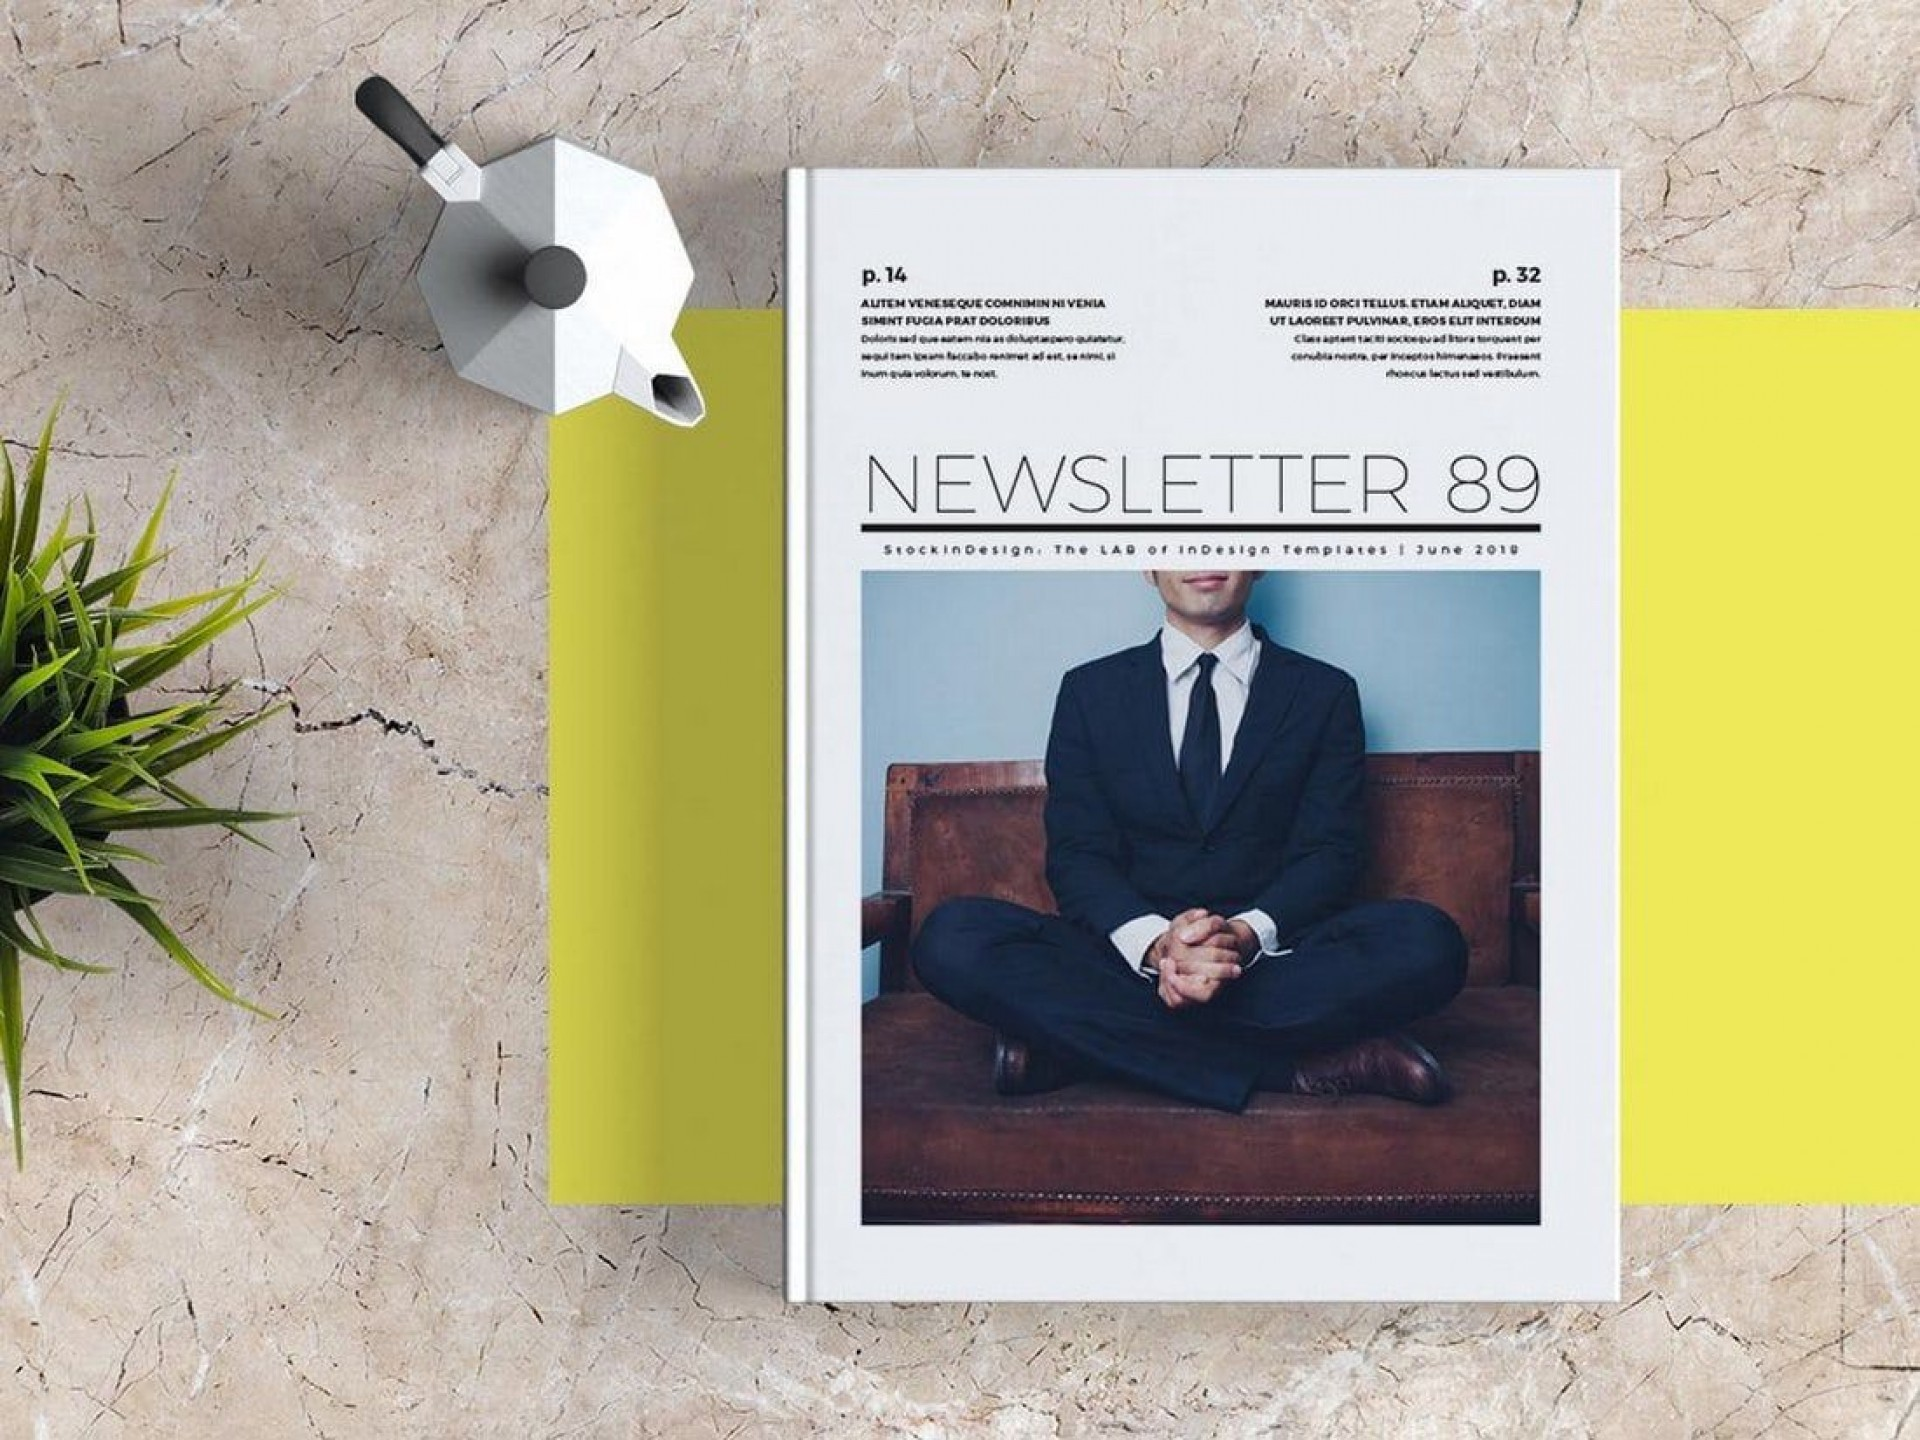 005 Unusual Free Newsletter Template For Word 2010 High Def 1920